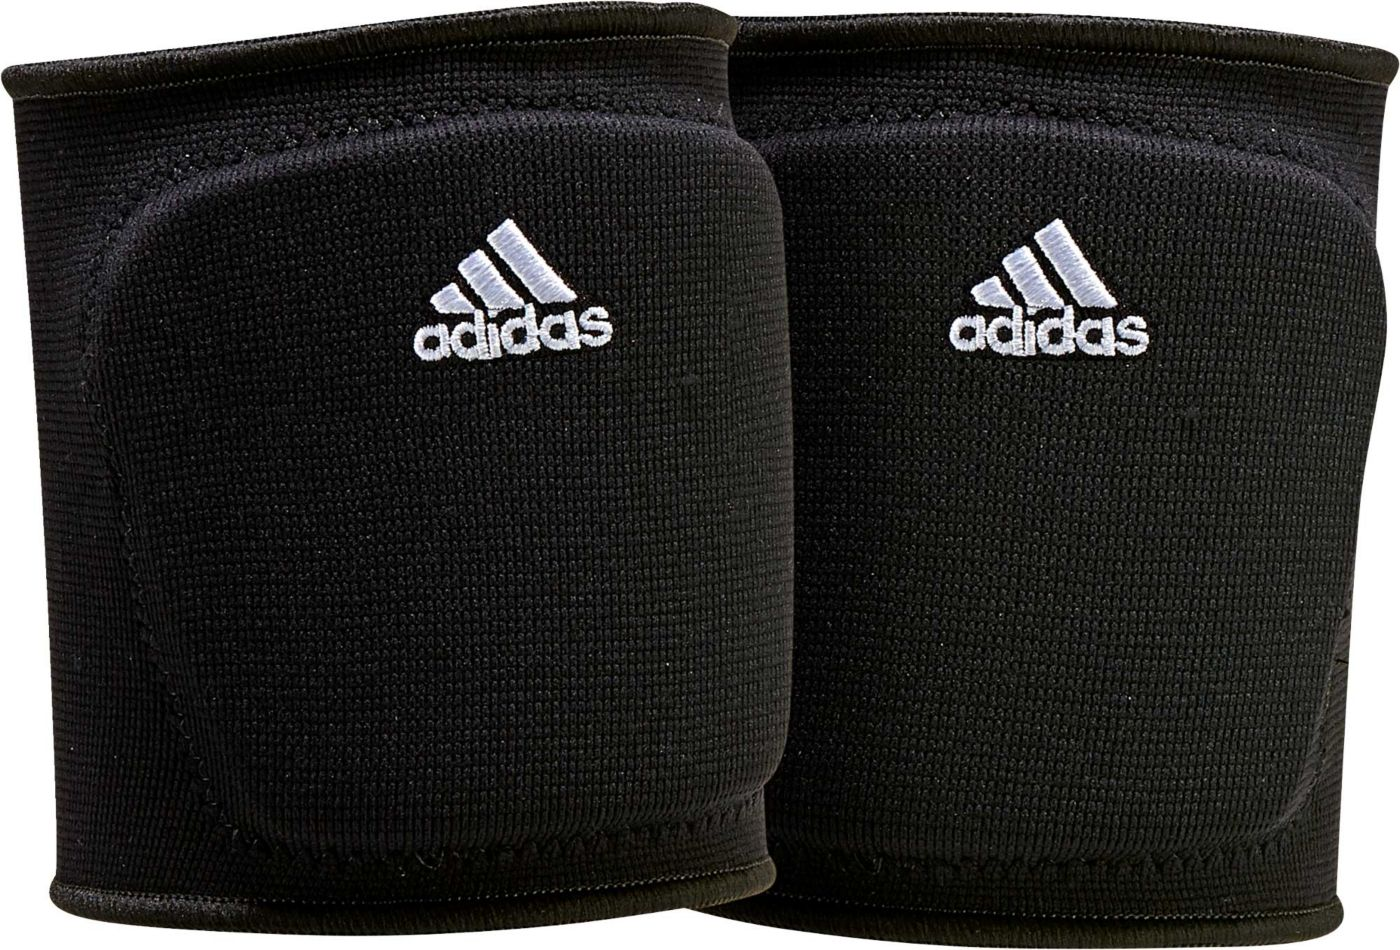 "adidas Adult 5"" Volleyball Knee Pads"